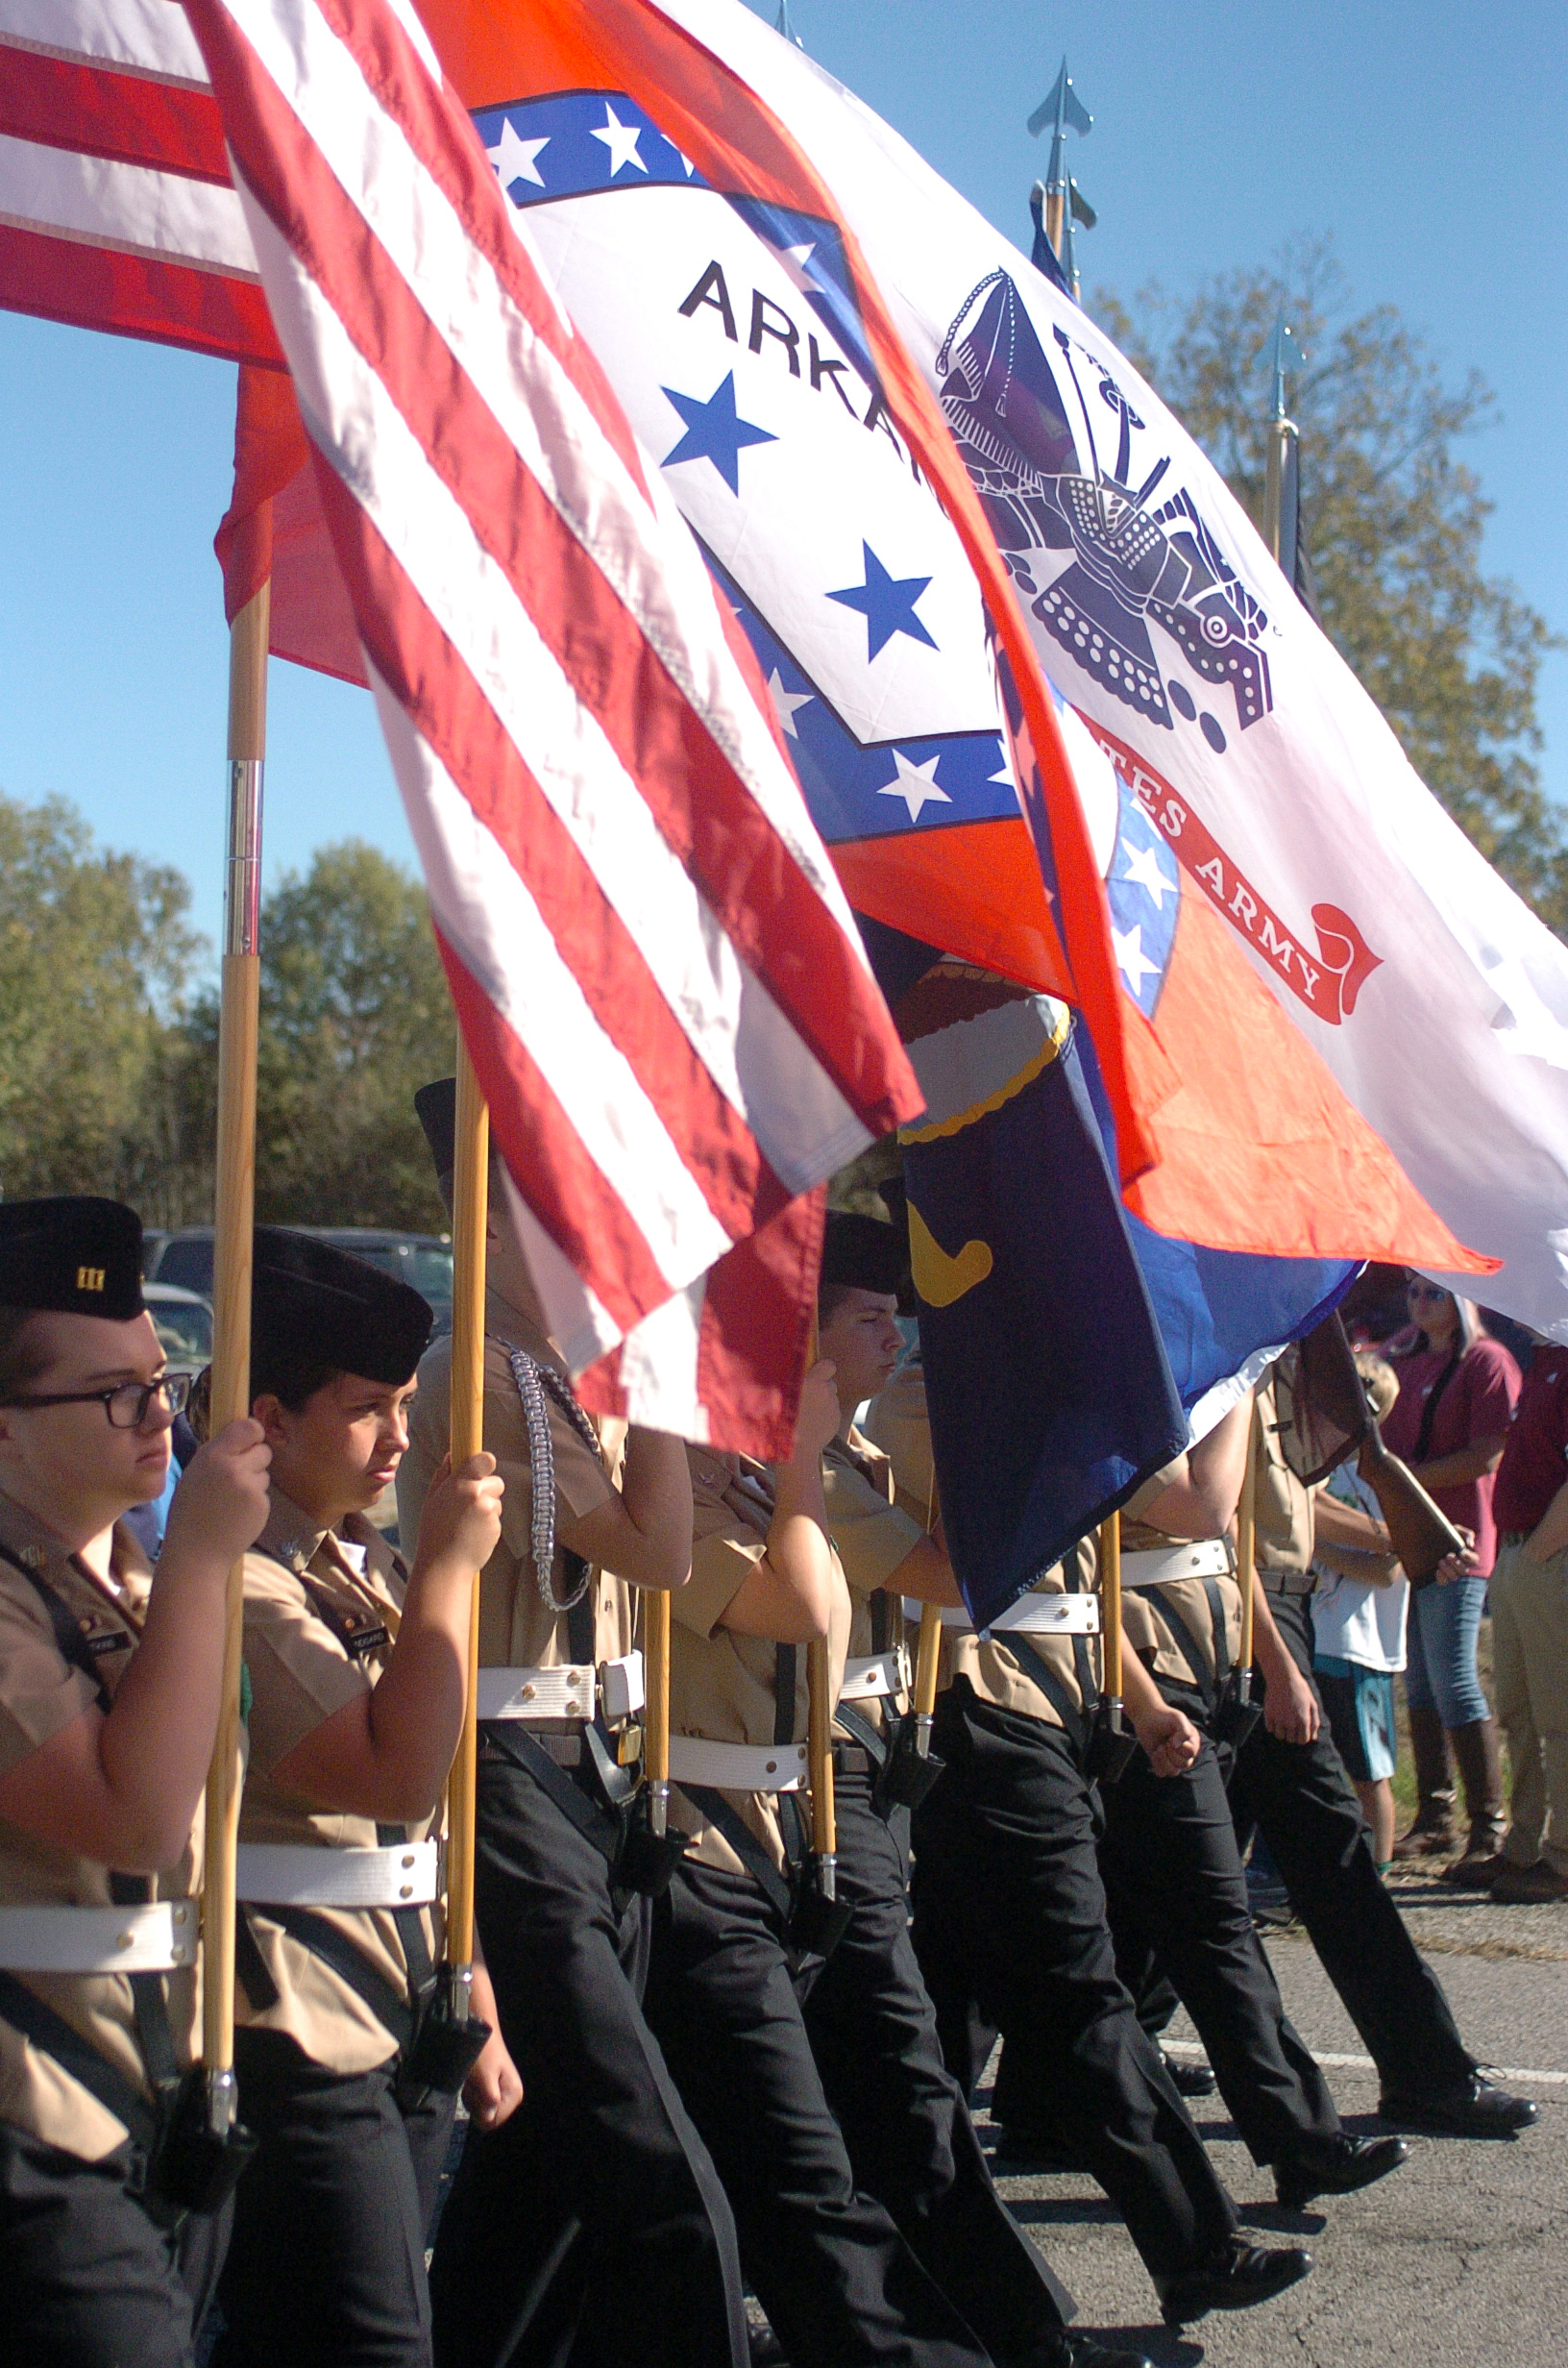 "A colorguard marches during the fifth annual Veterans Day Parade at Chaffee Crossing was held on Saturday, November 12, 2016 at the Chaffee Crossing Historic District in Fort Smith. The parade's theme was ""Women In The Military,"" and was held to honor veterans from all branches of service and all U.S. wars. (Please include credit when using this photo) STEVE MARQUEZ/StMarq Photography"